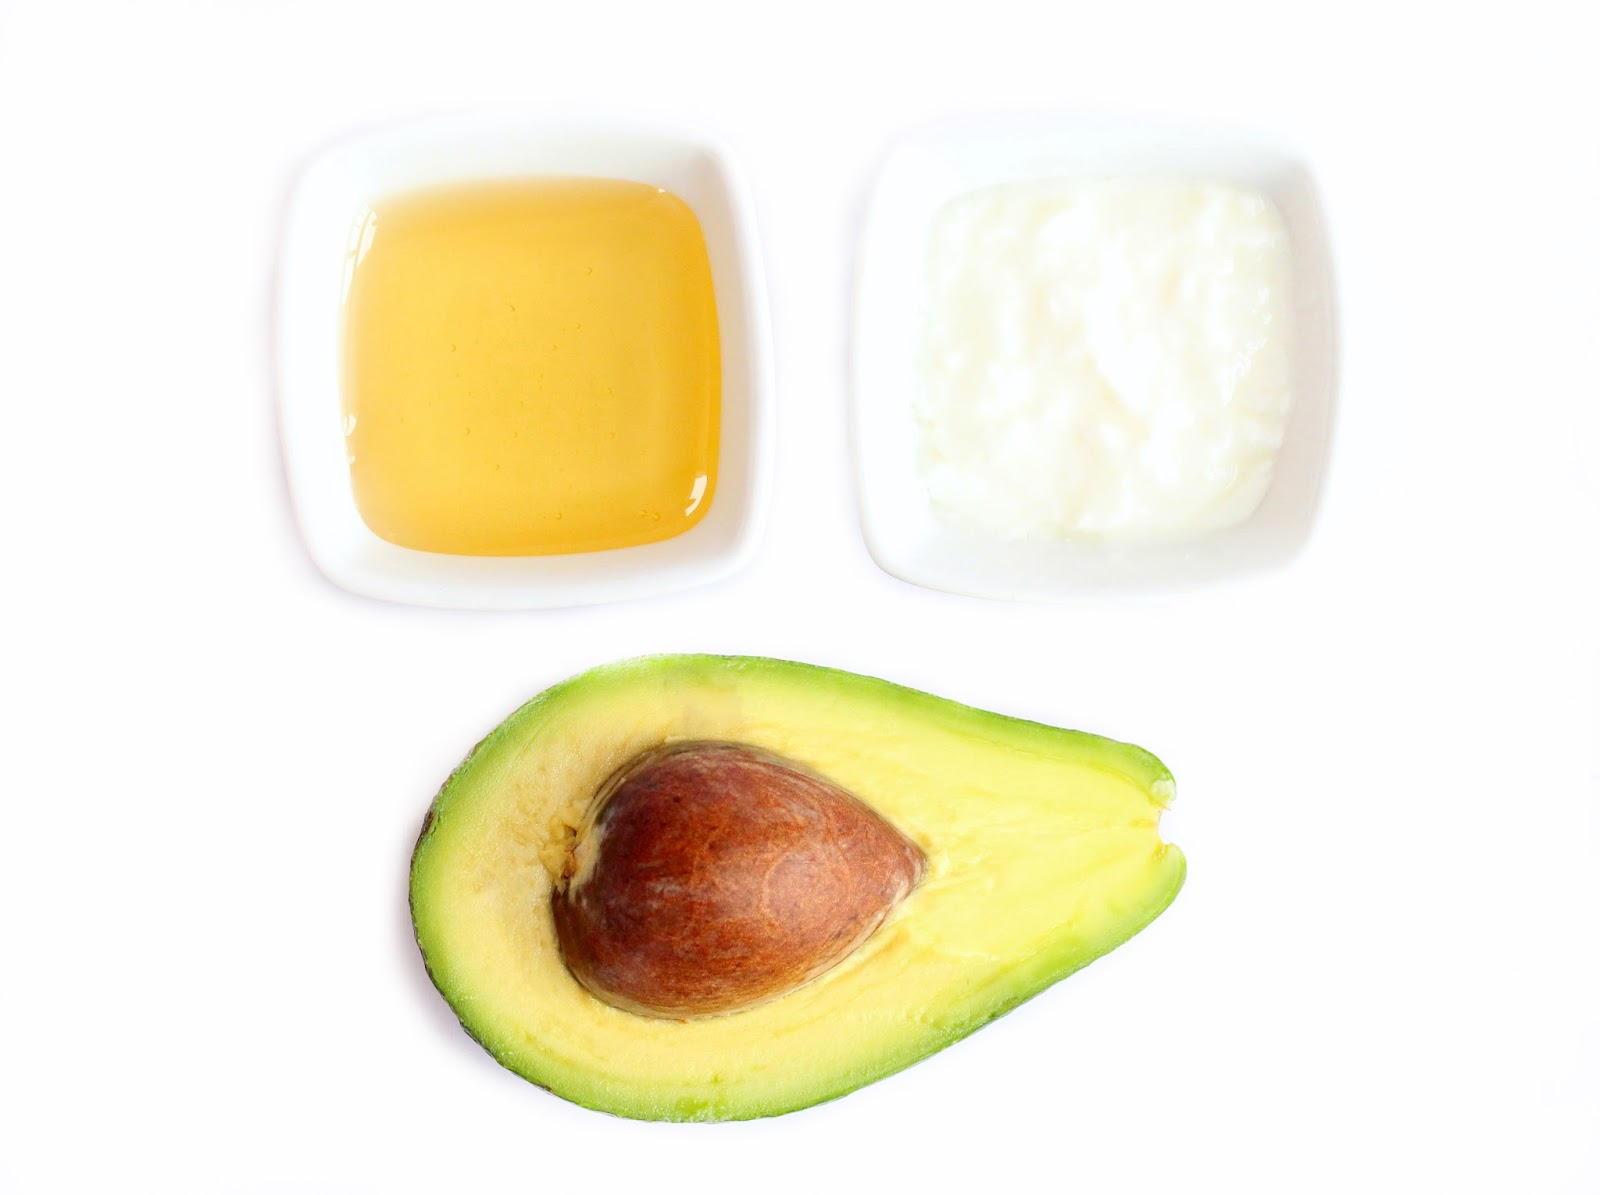 DIY Face Mask with avocado For Dry Skin